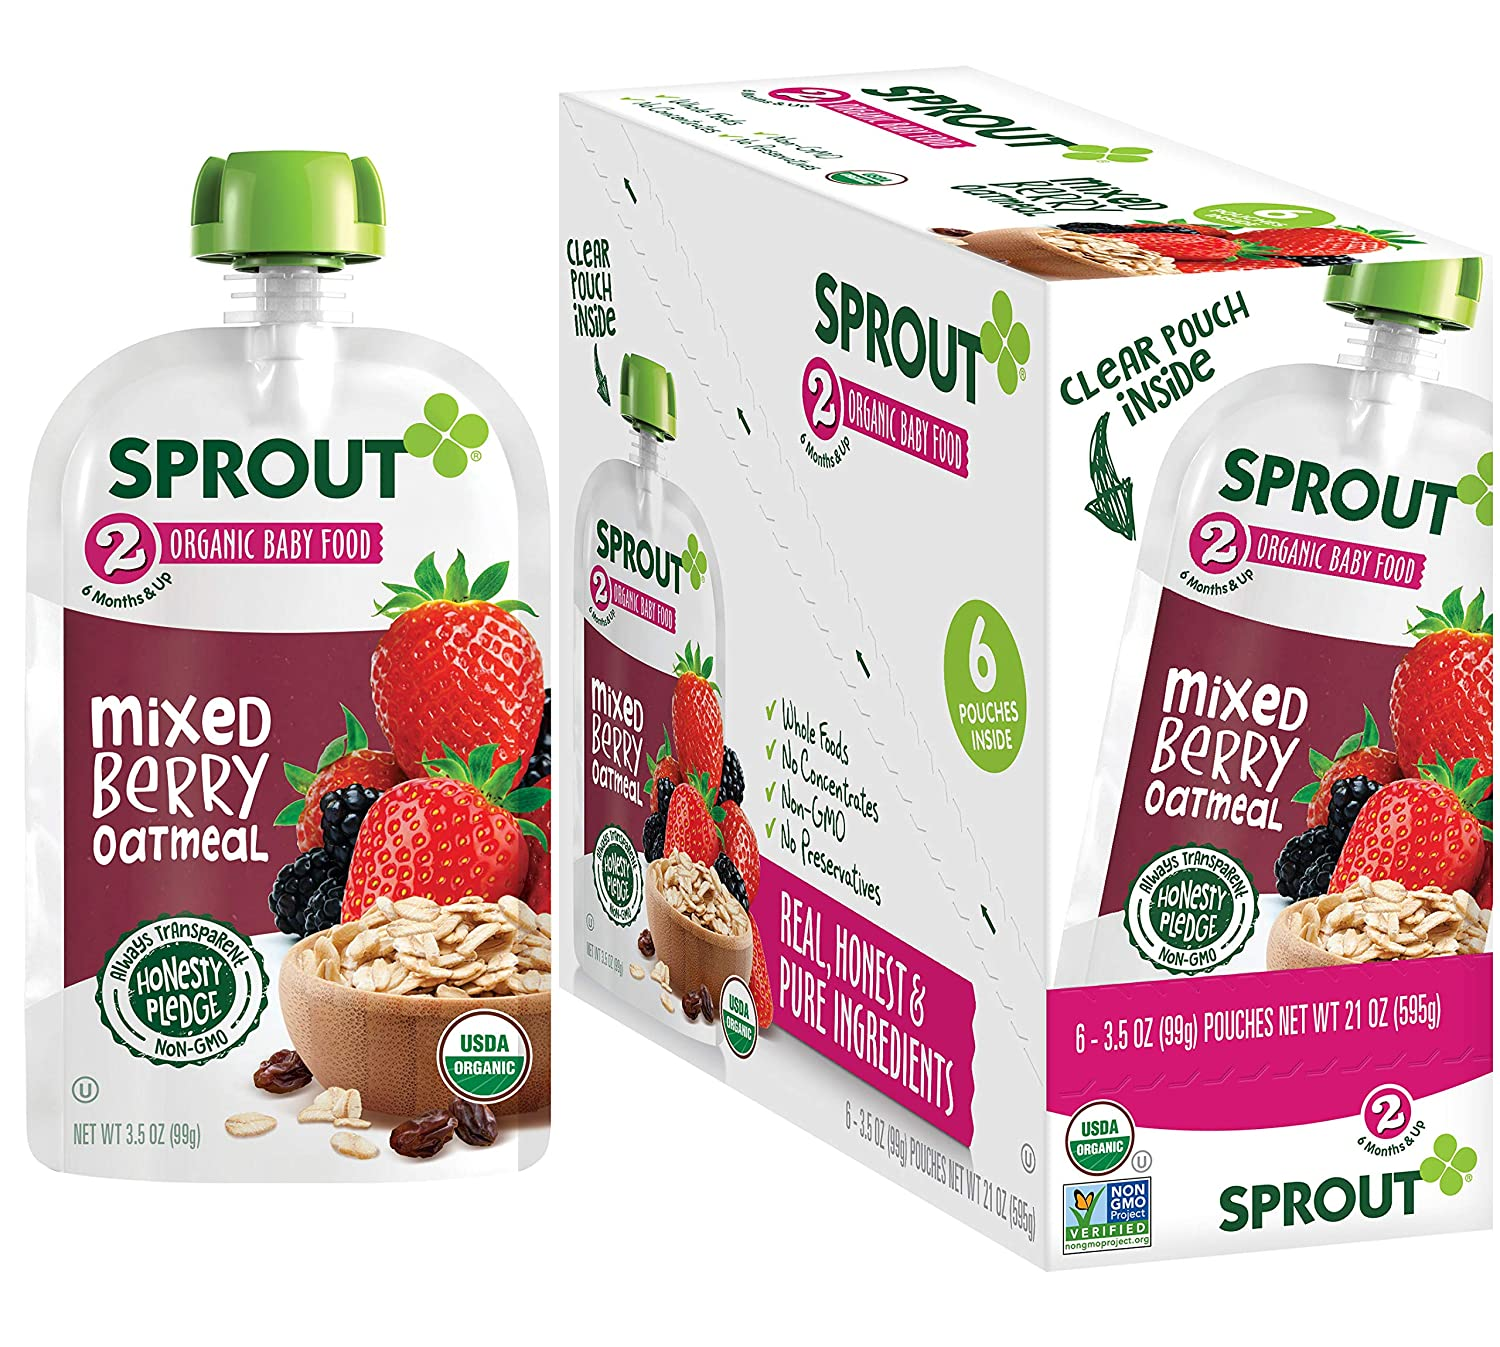 Sprout Organic Stage 2 Baby Food Pouches, Mixed Berry Oatmeal, 3.5 Ounce (Pack of 6)